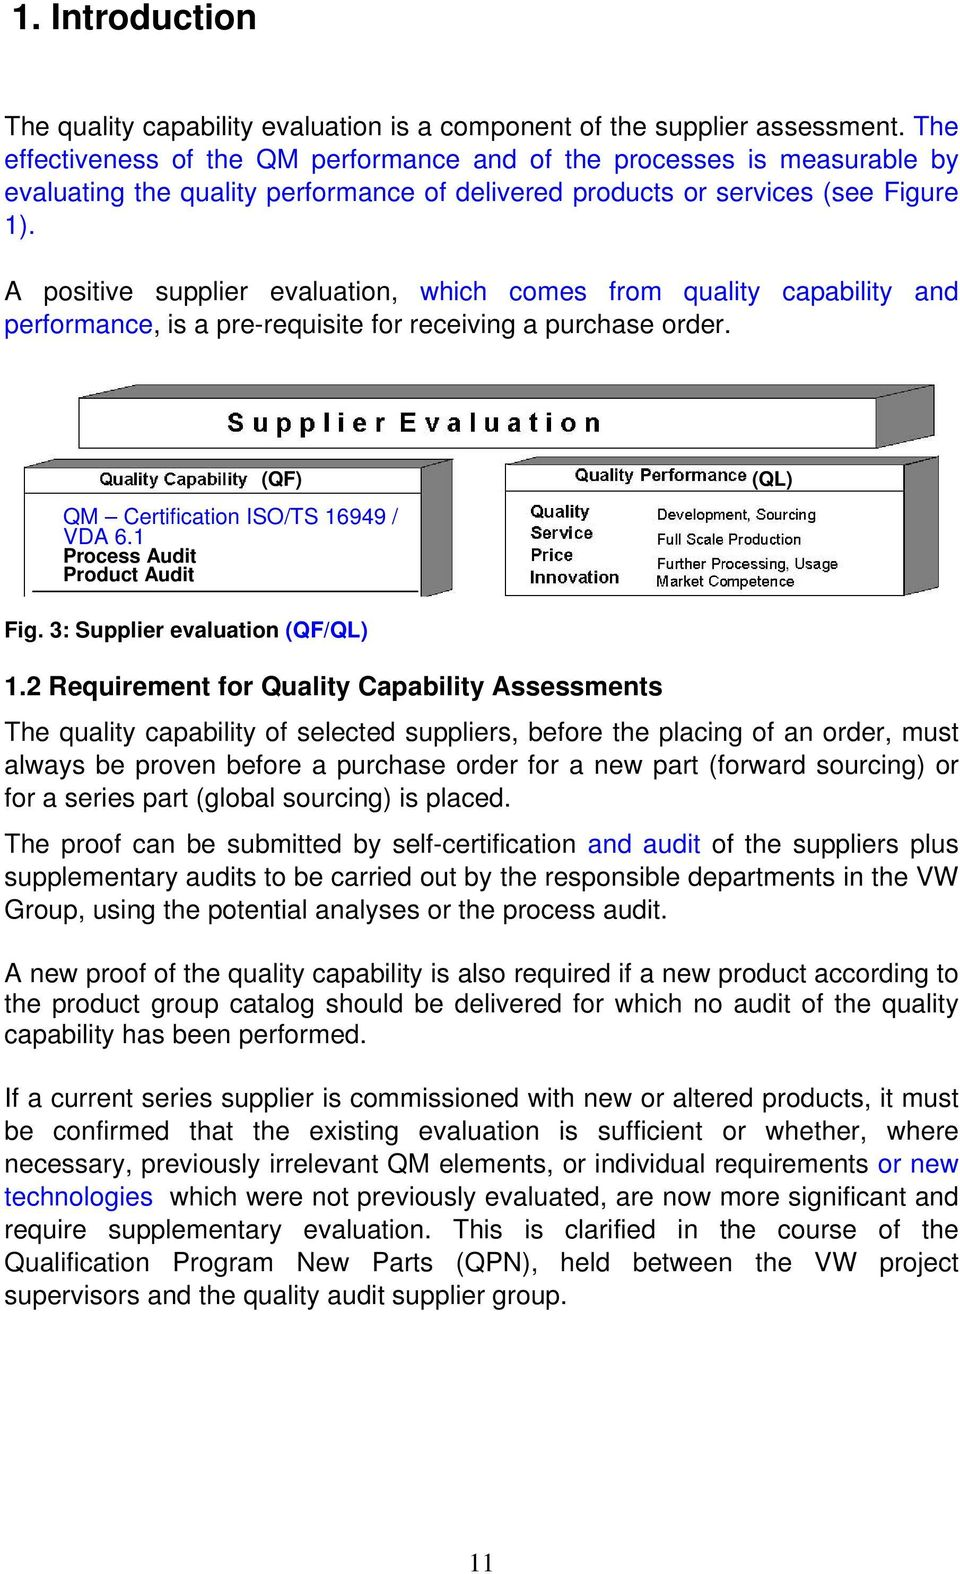 VOLKSWAGEN AG  Quality Capability Suppliers Assessment Guidelines - PDF